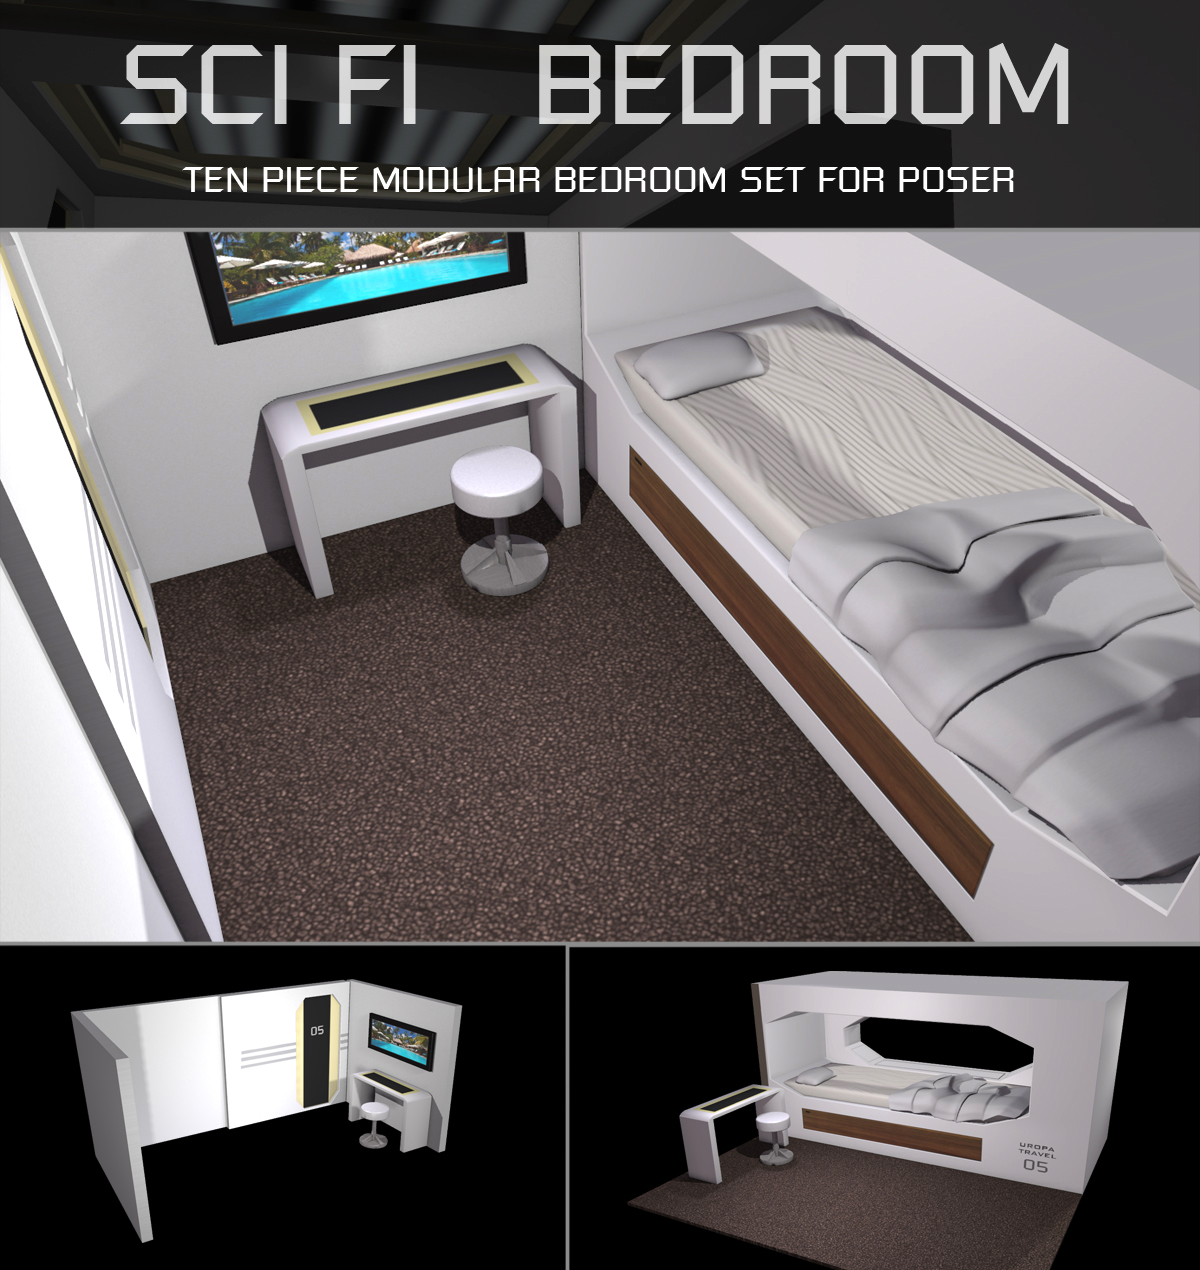 Sci Fi Bedroom for Poser by shawnaloroc